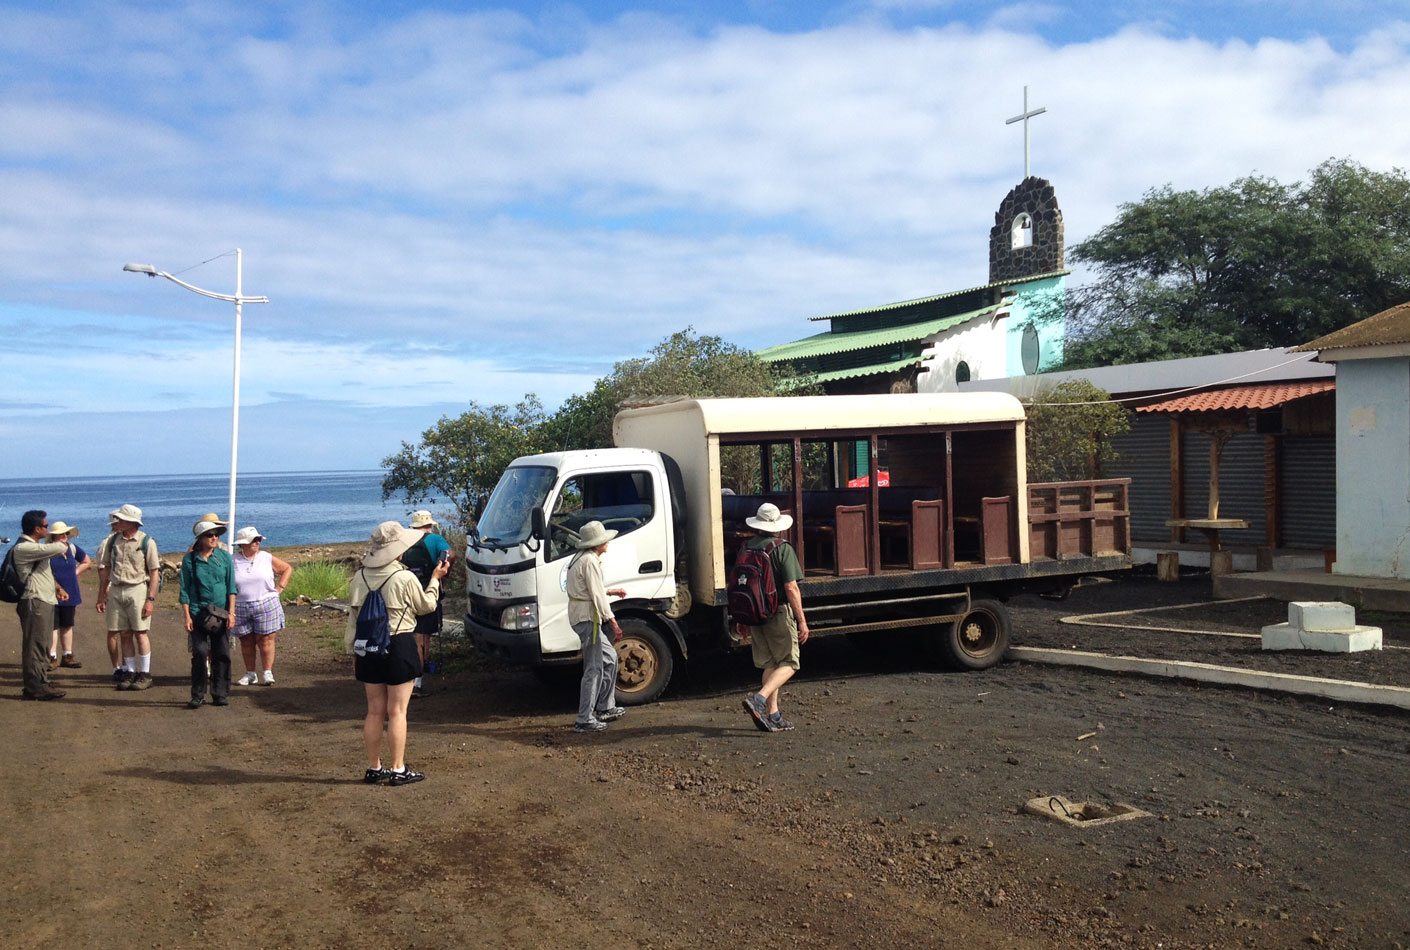 After exploring the coastal area for a while, we boarded this bus and headed to the highlands.